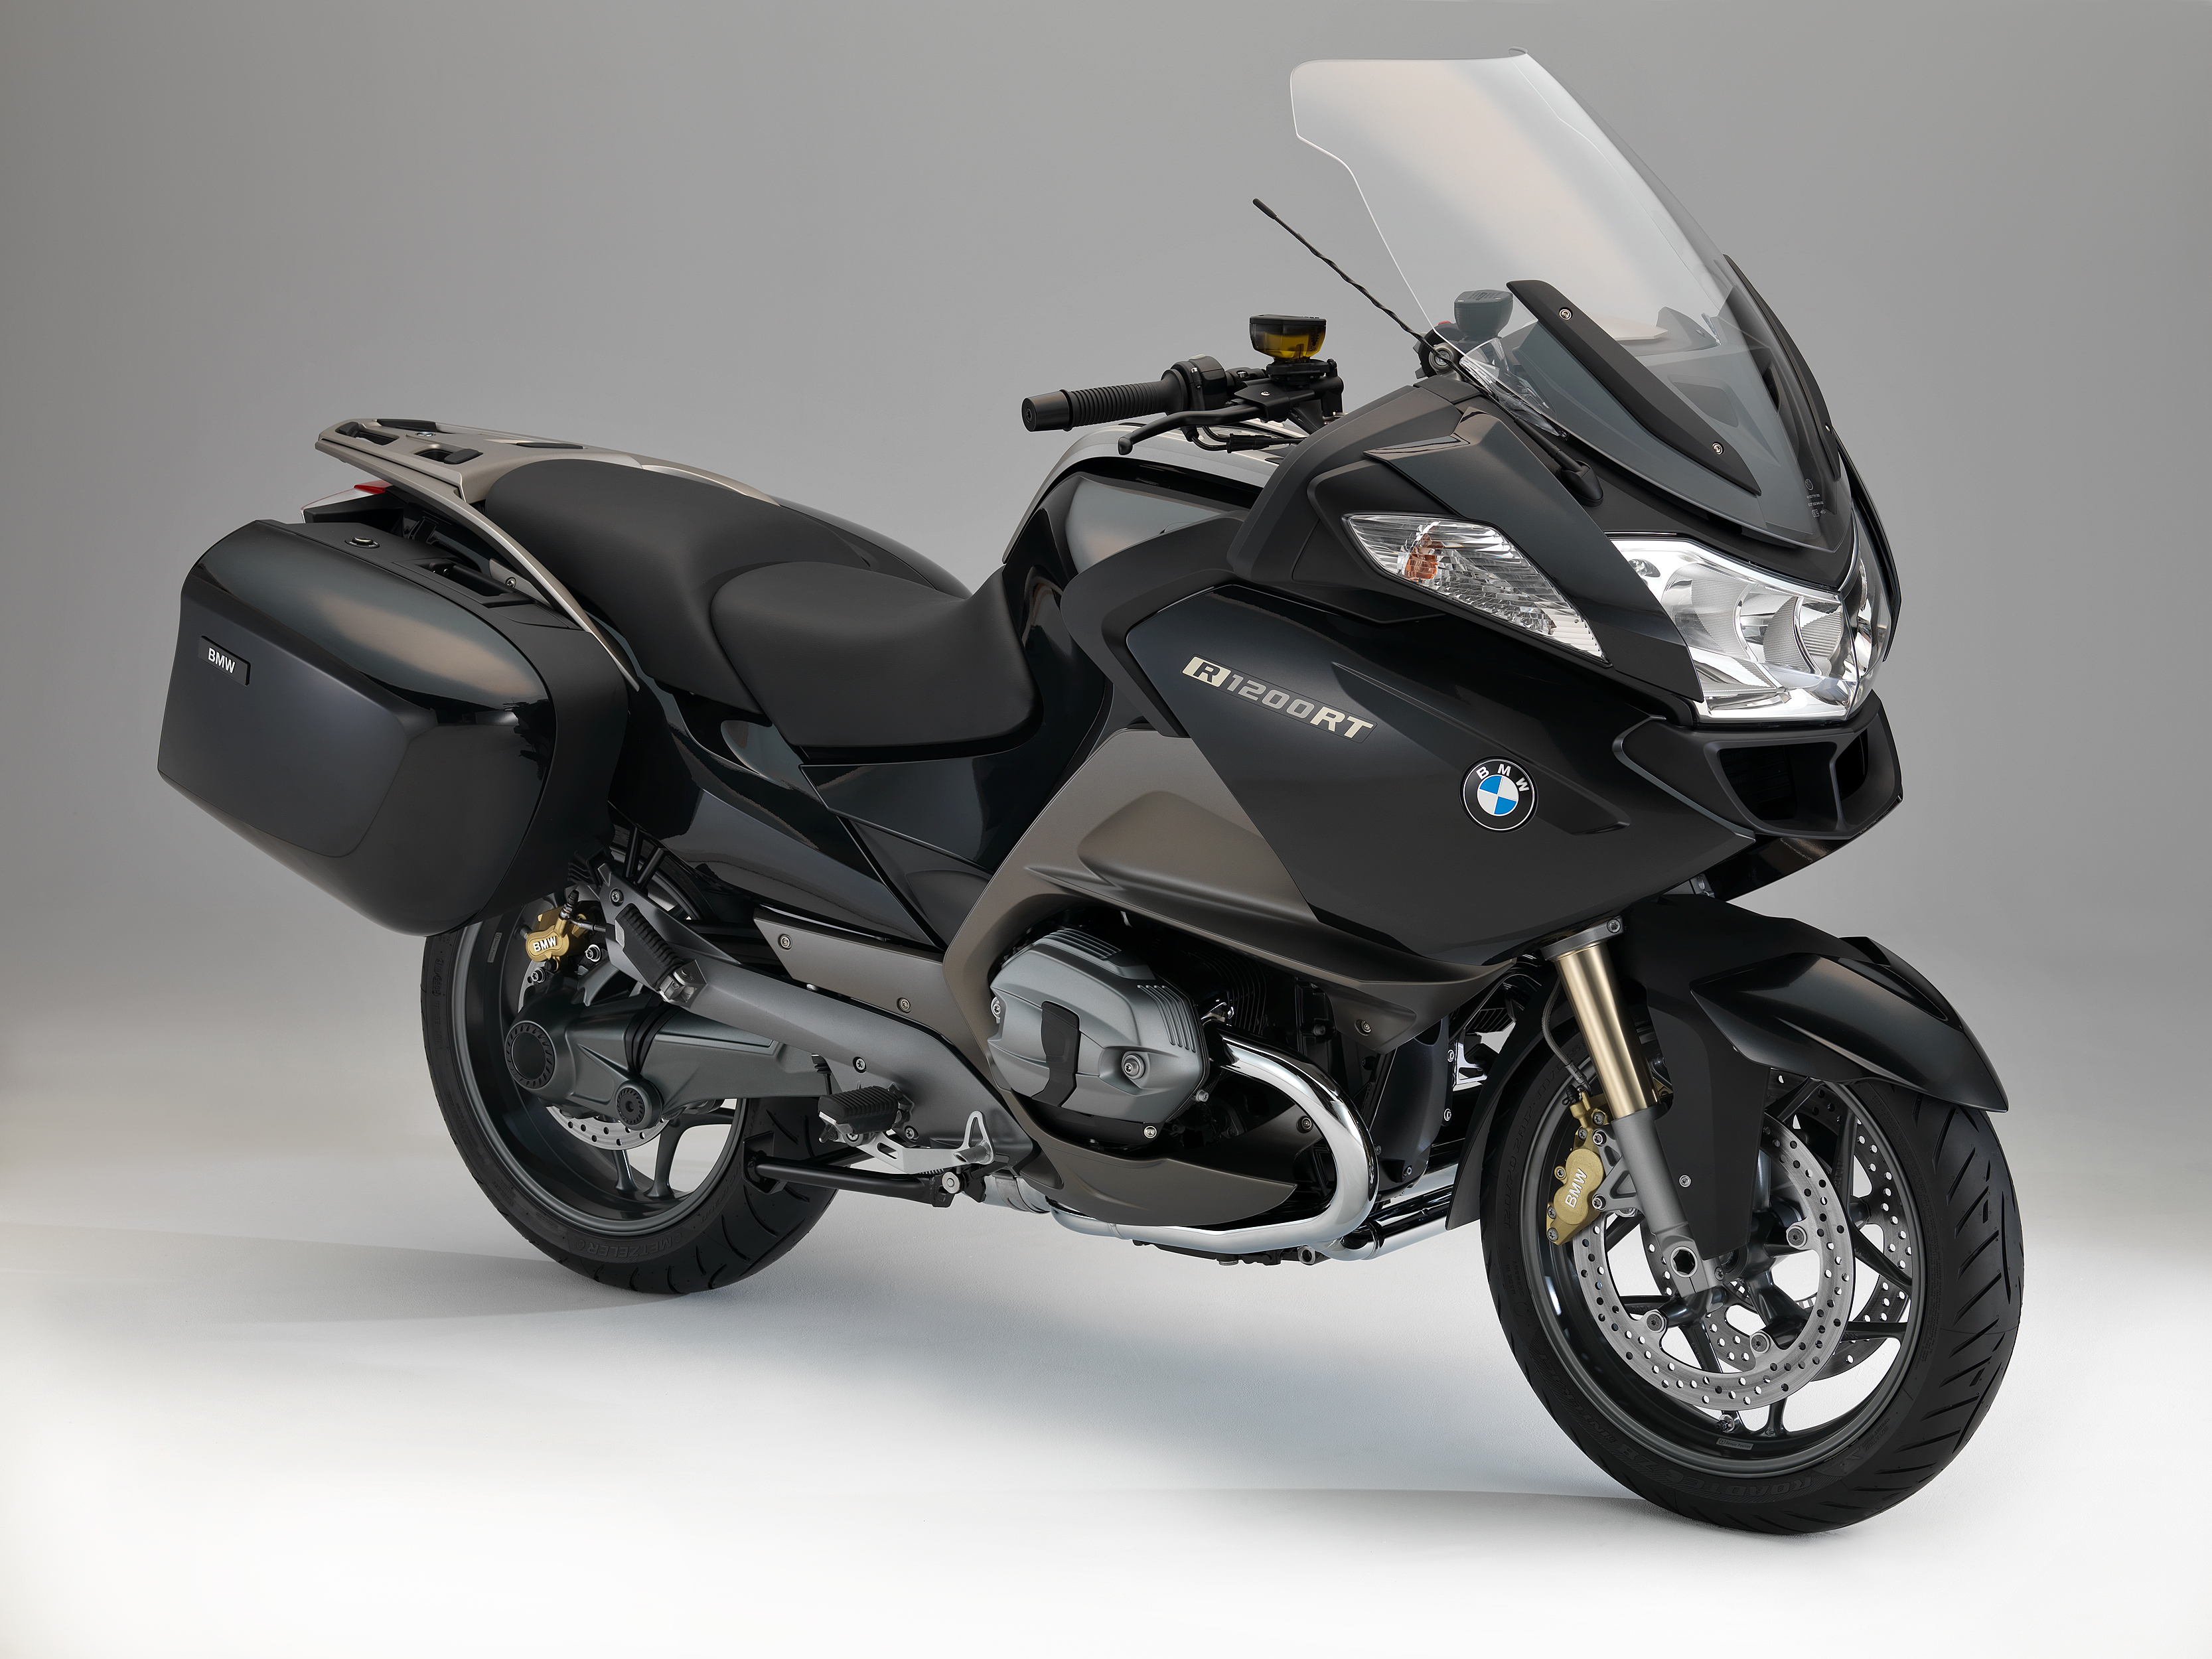 BMW R1200RT images #9052